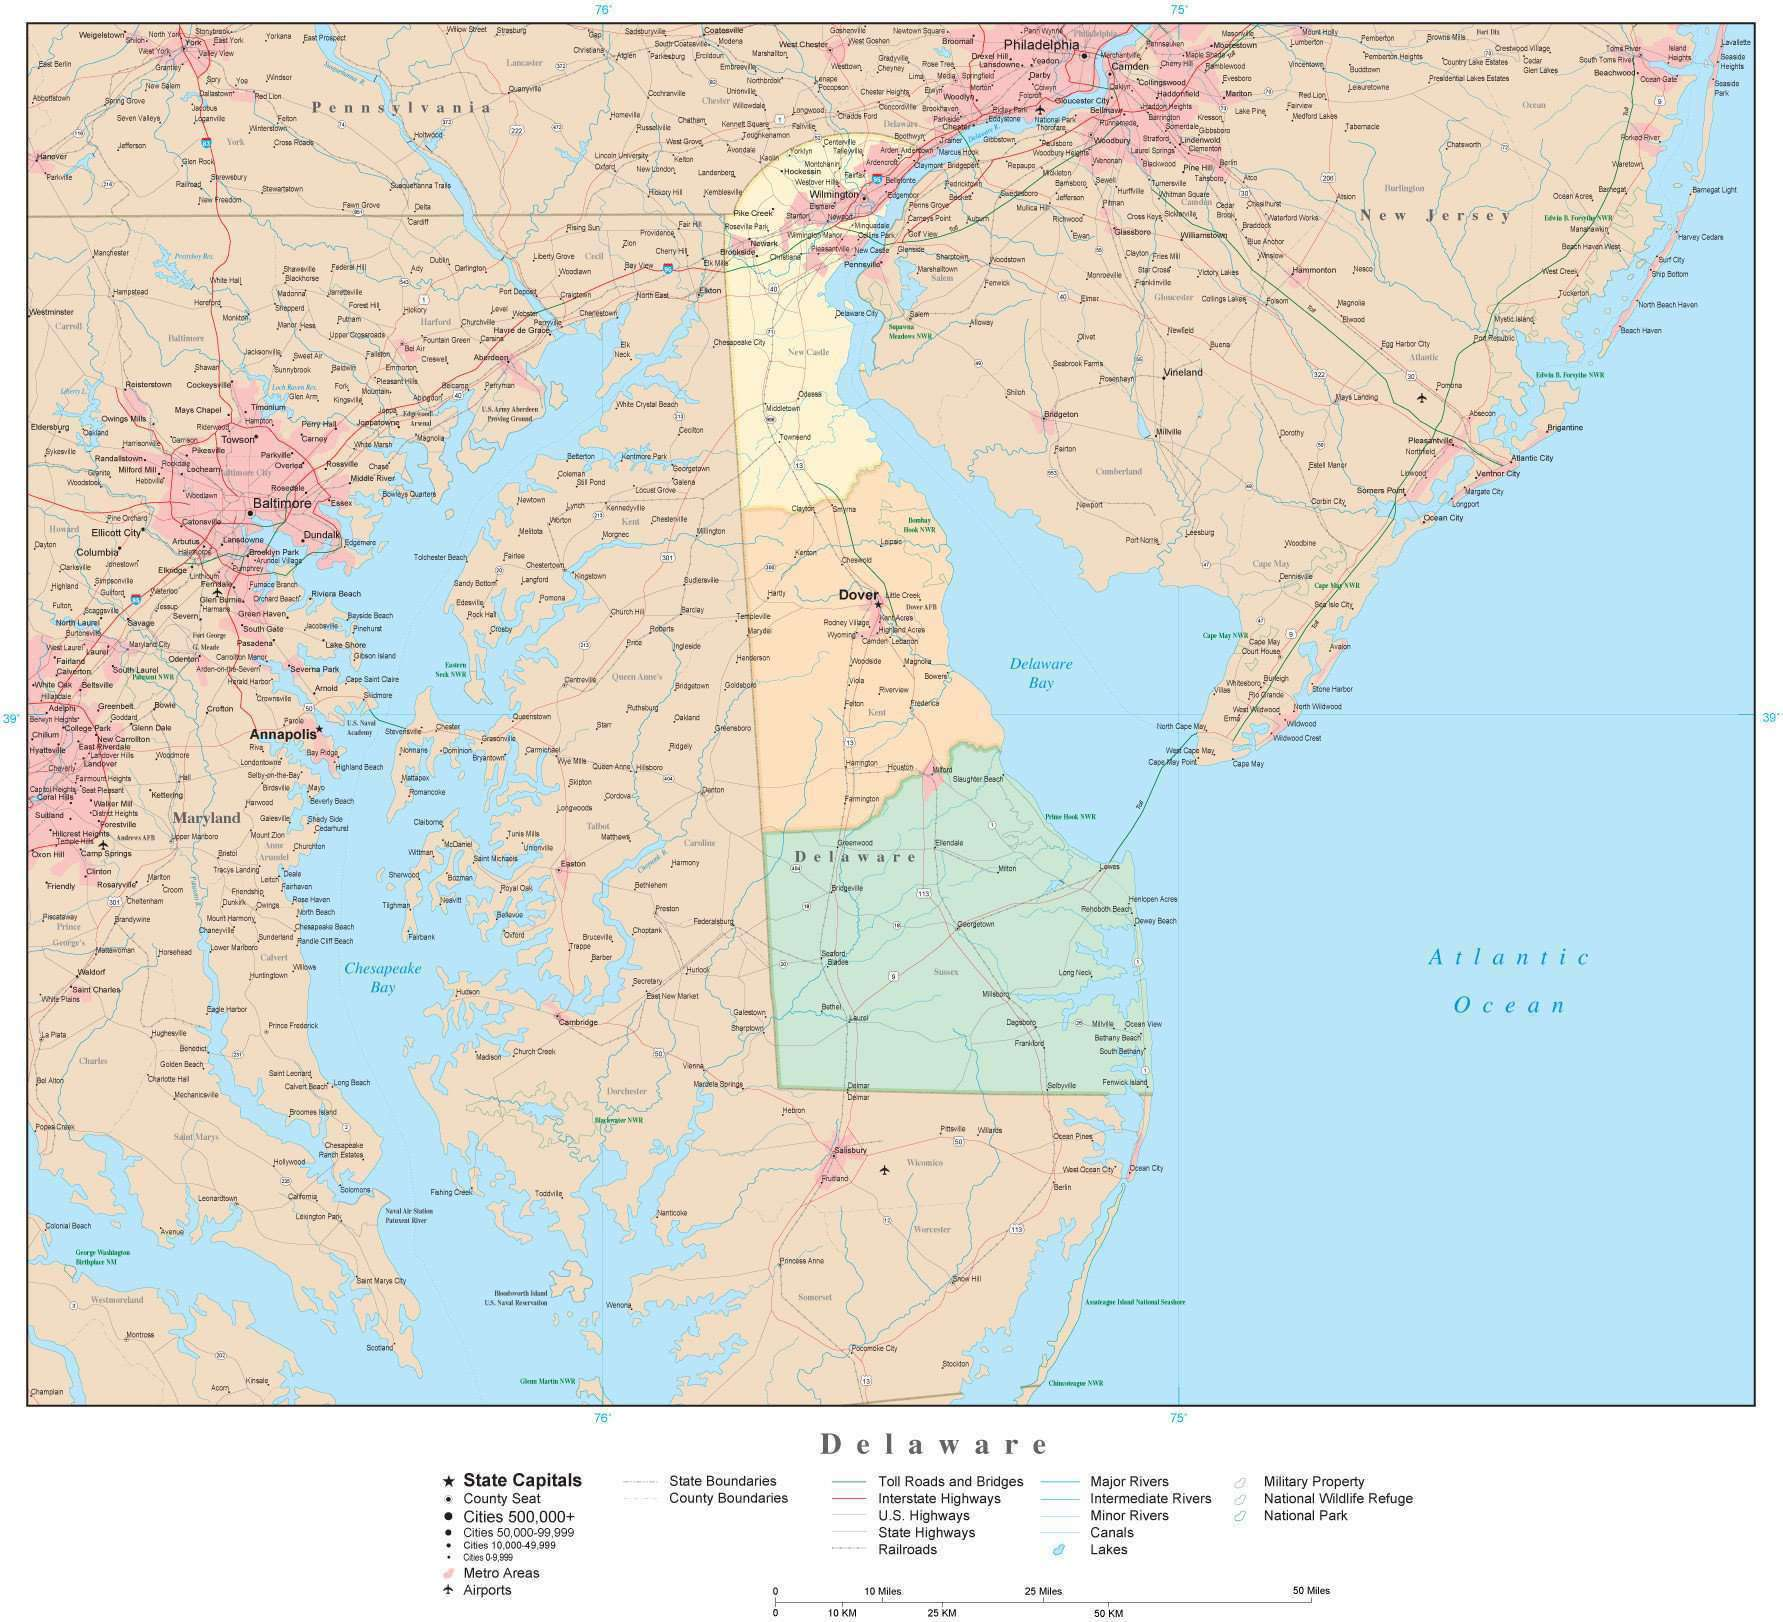 Detailed Delaware Digital Map with Counties, Cities, Highways, Railroads,  Airports, National Parks and more